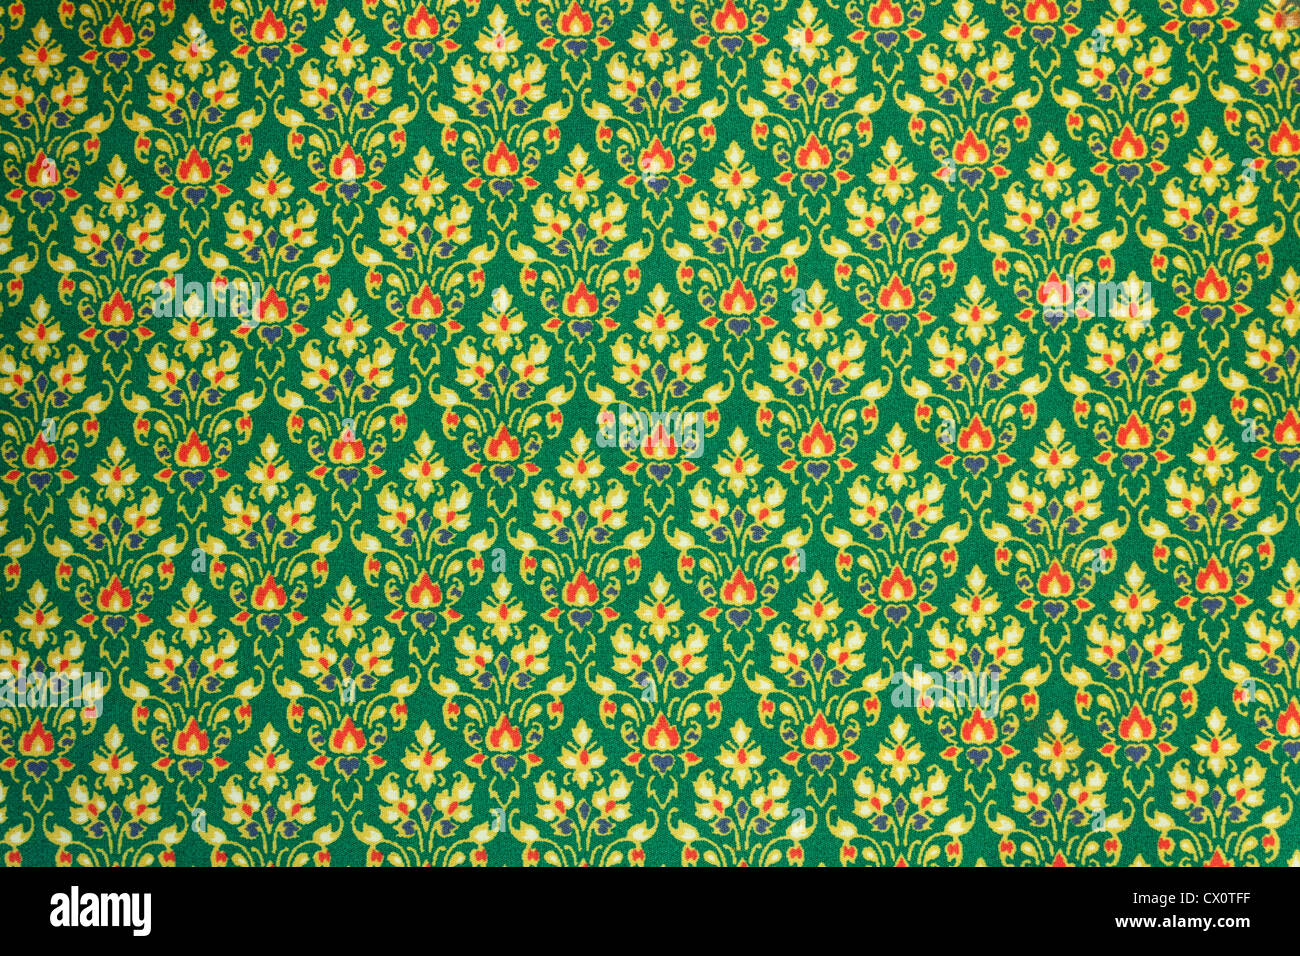 Thai Design Wallpaper : Background of fabric cotton material with a traditional